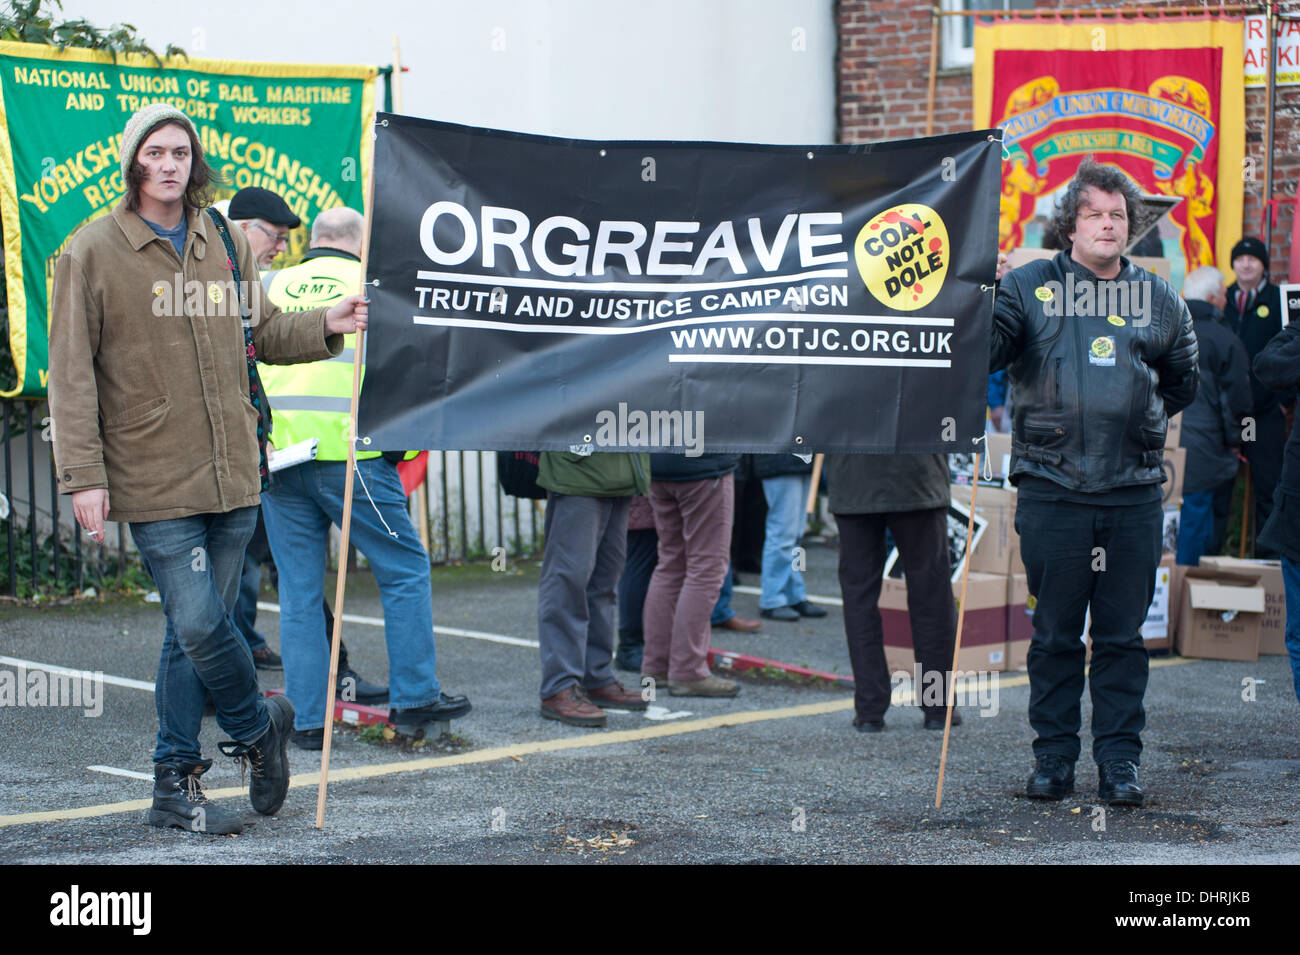 Orgreave Stock Photos & Orgreave Stock Images - Alamy